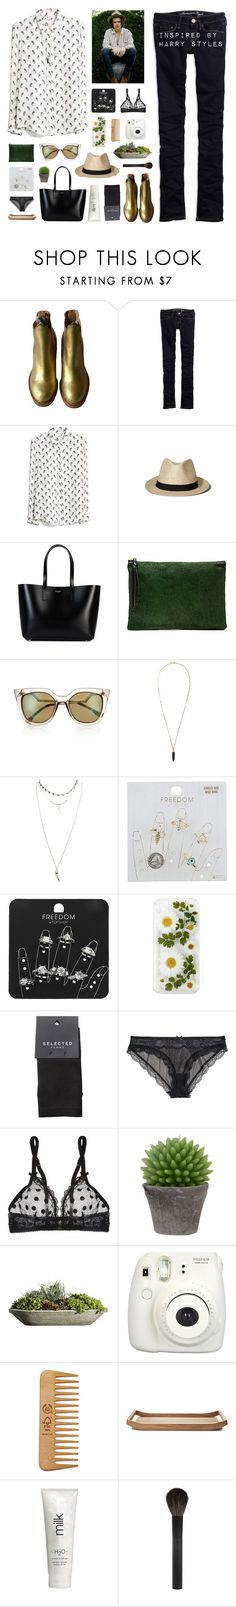 """""""BABY I'M PERFECT SO LET'S GO RIGHT NOW"""" by soundlxss ❤ liked on Polyvore featuring American Eagle Outfitters, MANGO, Abercrombie & Fitch, Yves Saint Laurent, Oliveve, Fendi, Isabel Marant, Wet Seal, Topshop and SELECTED"""